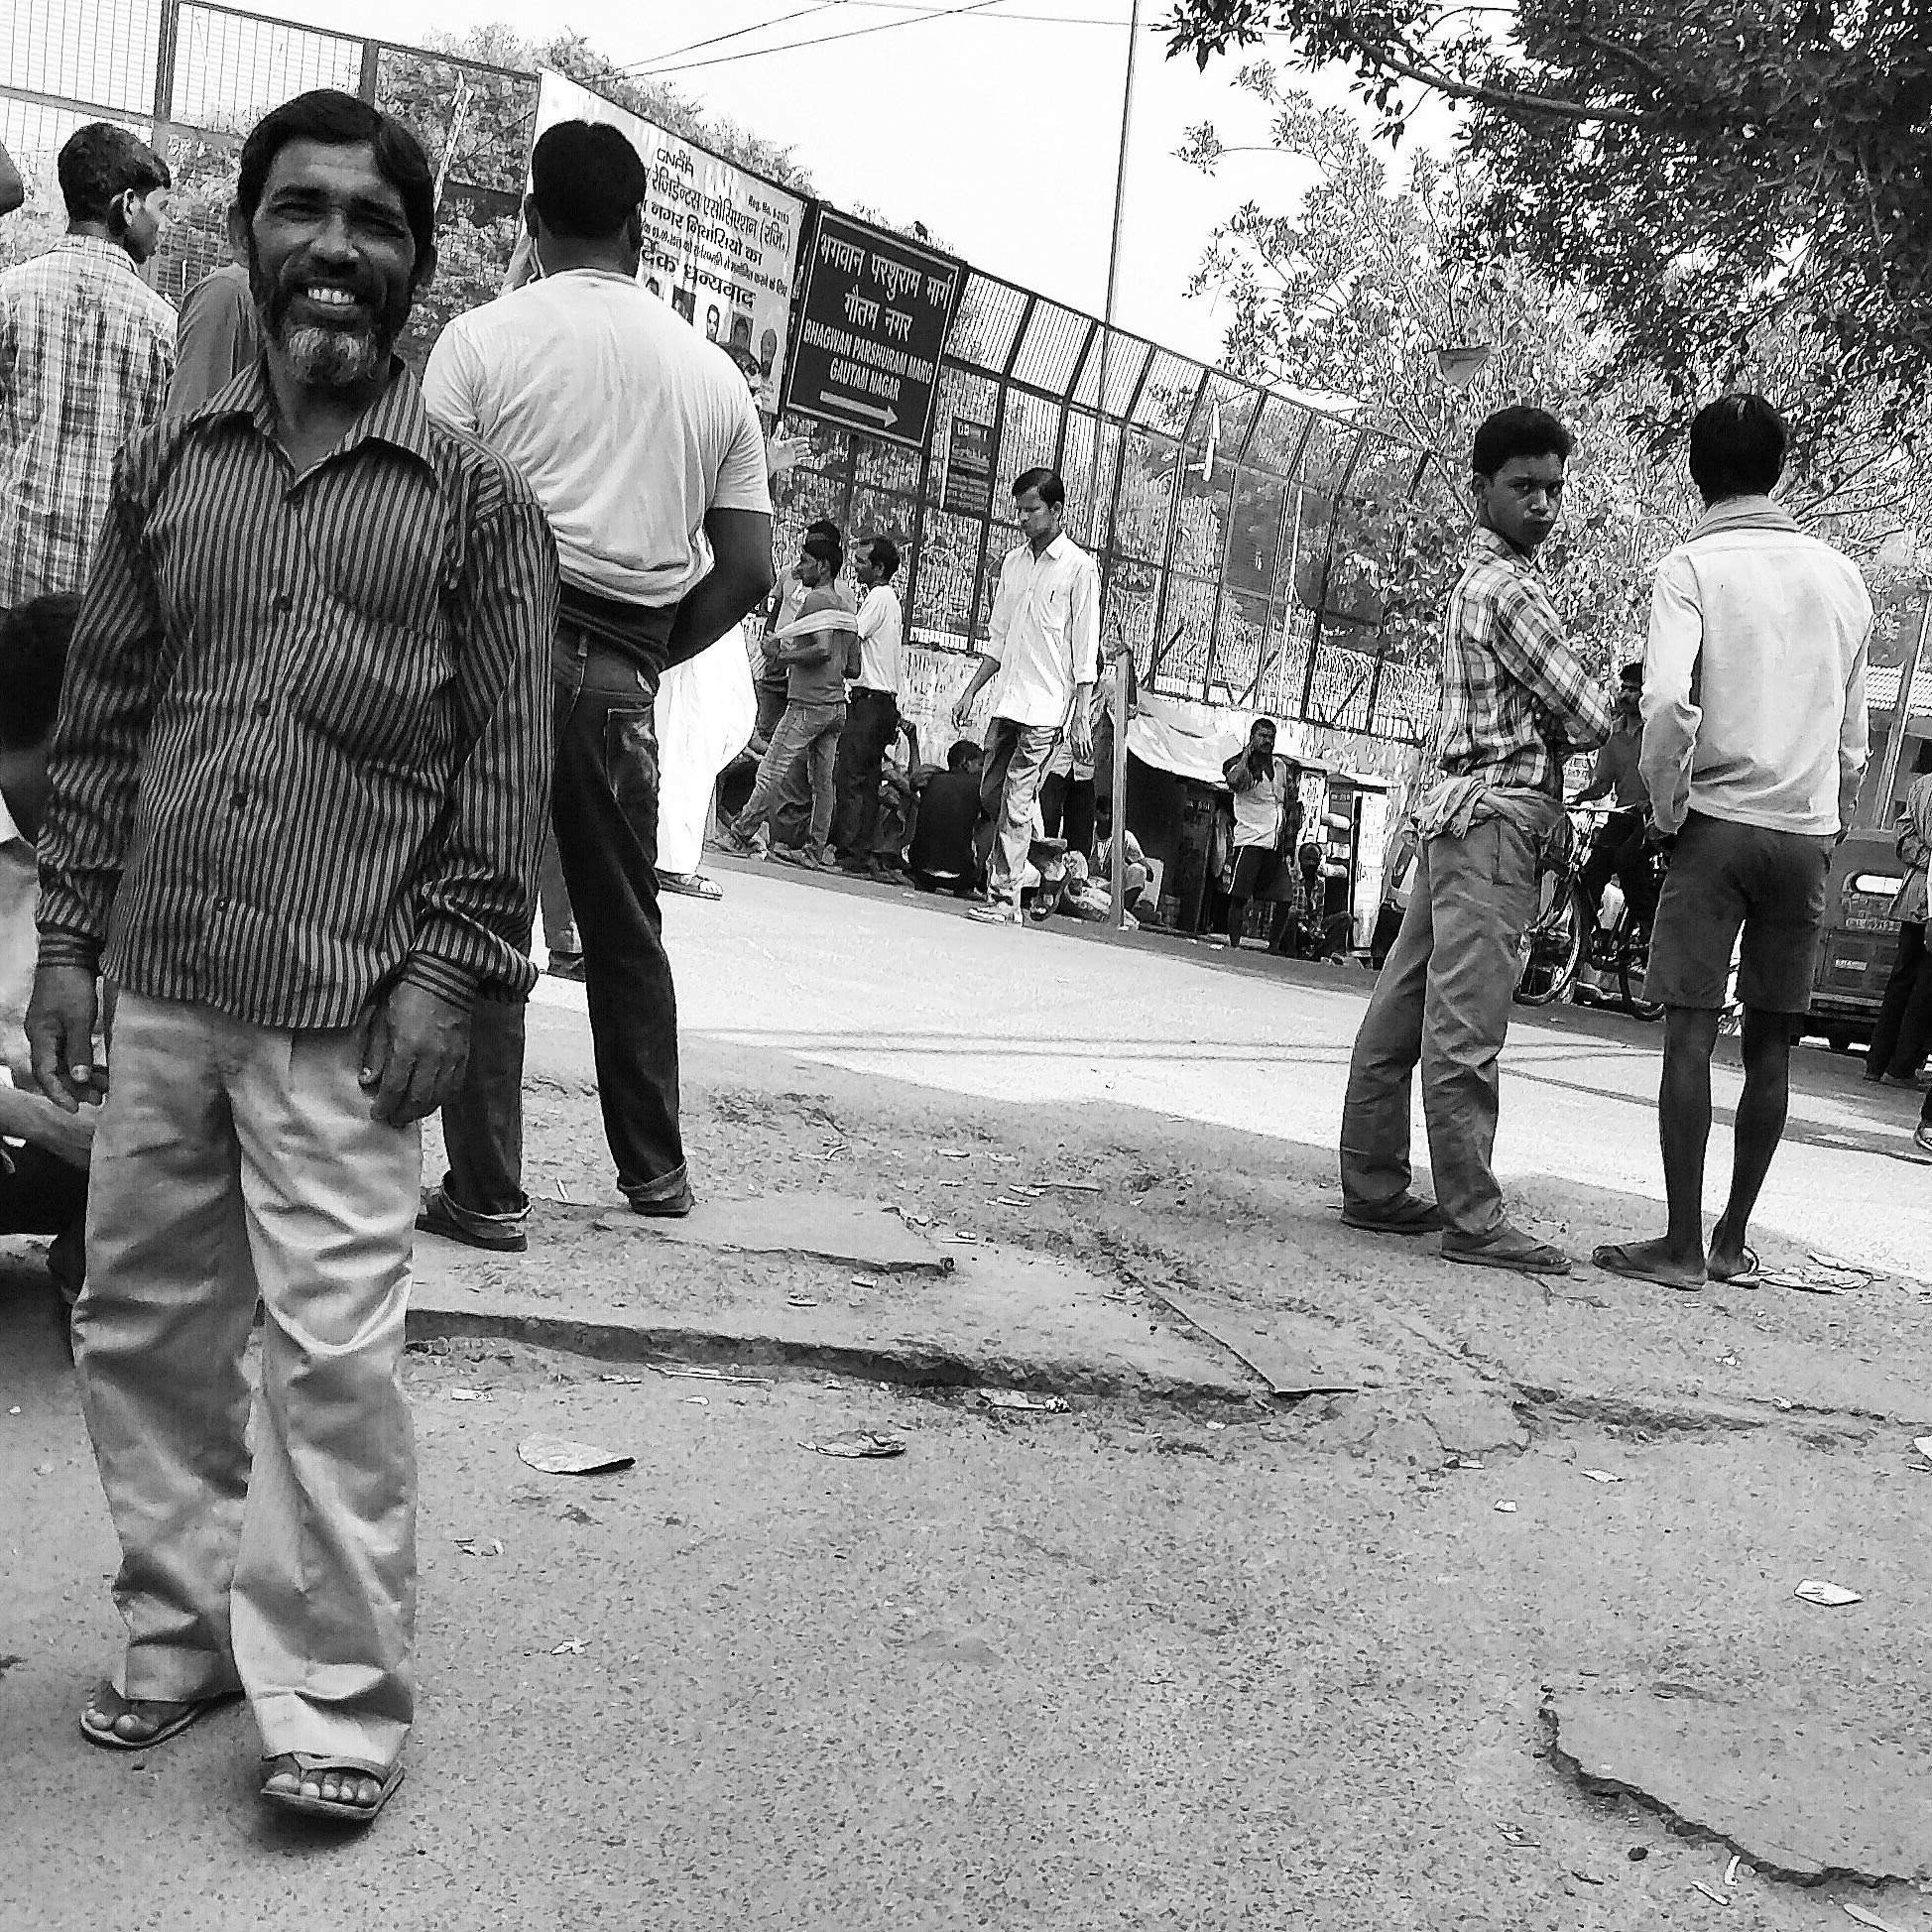 Daily wage labourers looks on while waiting to get picked up by prospective clients.